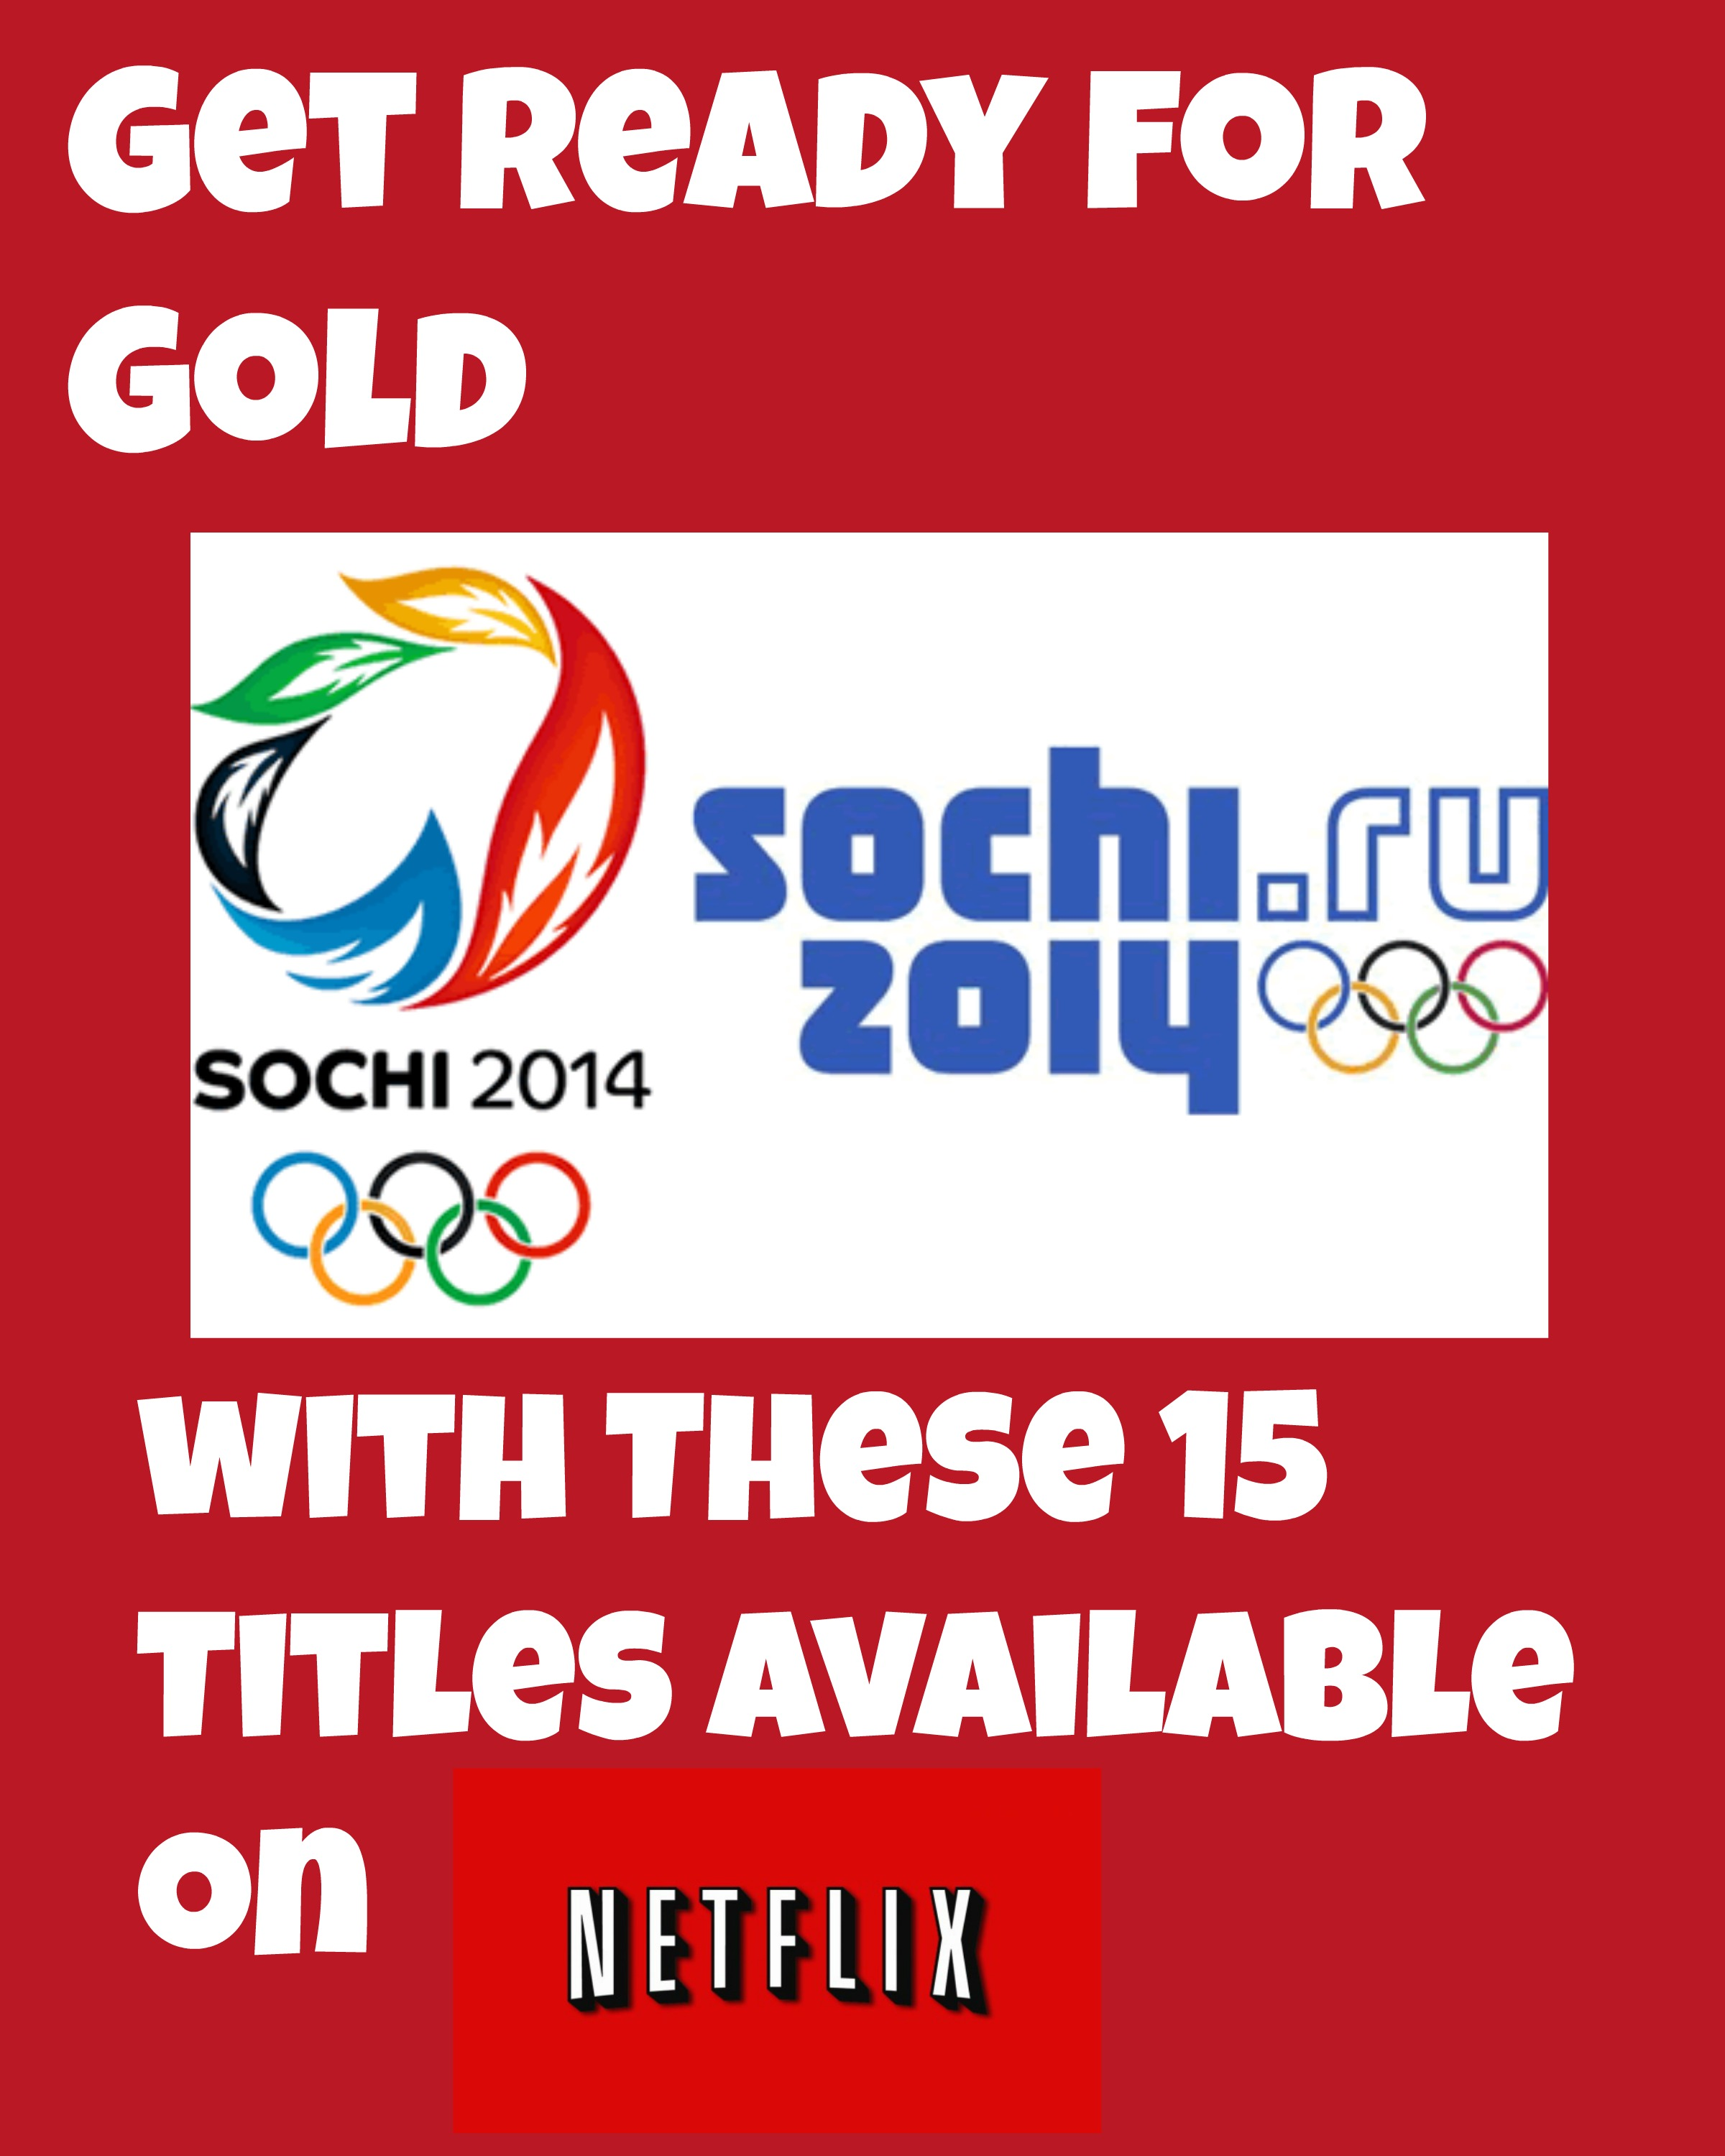 Get Ready for Gold with These 15 Titles Available on Netflix #StreamTeam